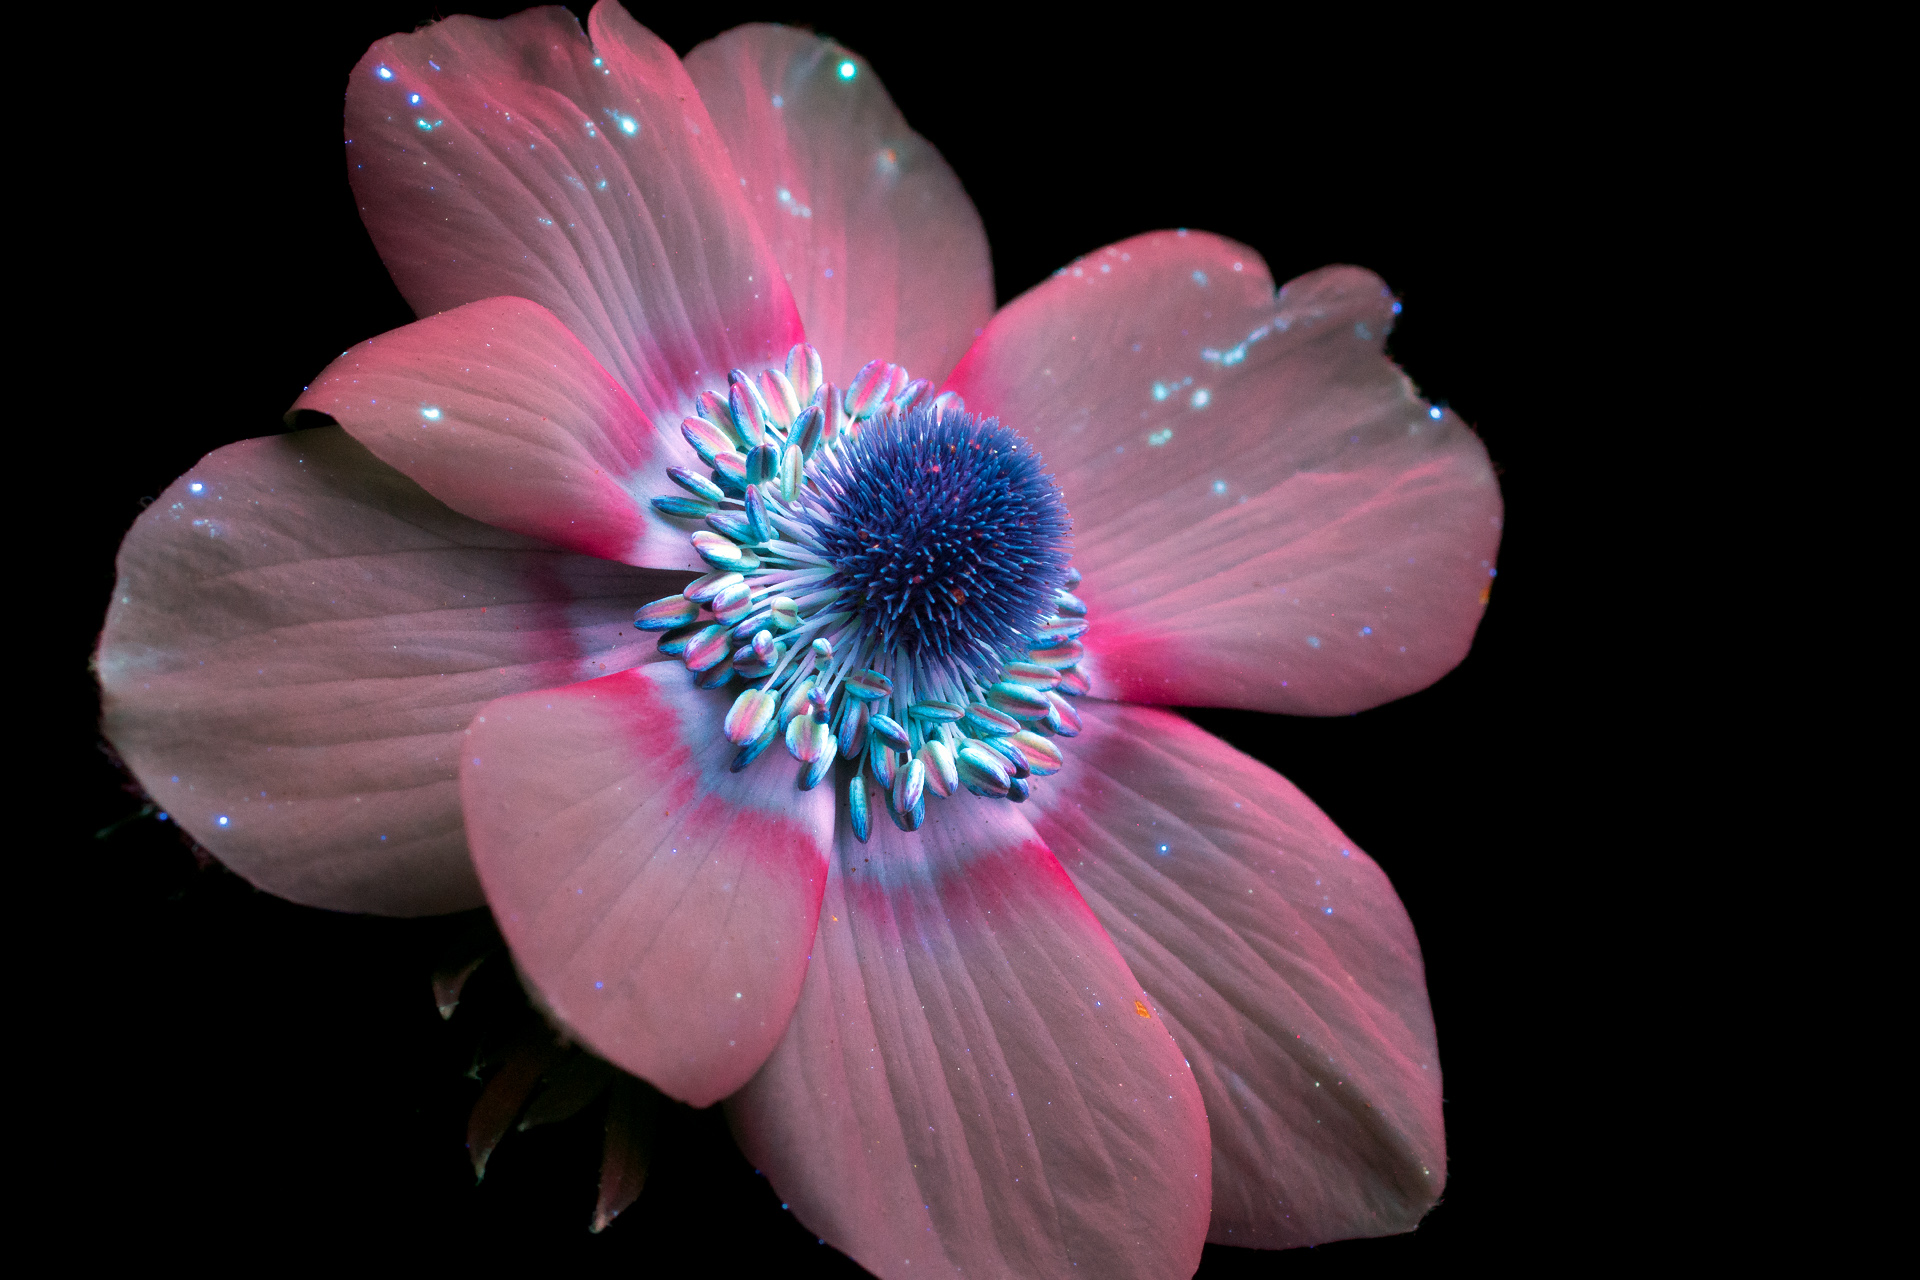 New Sparkling Blooms Photographed with Ultraviolet-Induced Visible Fluorescence by Craig Burrows